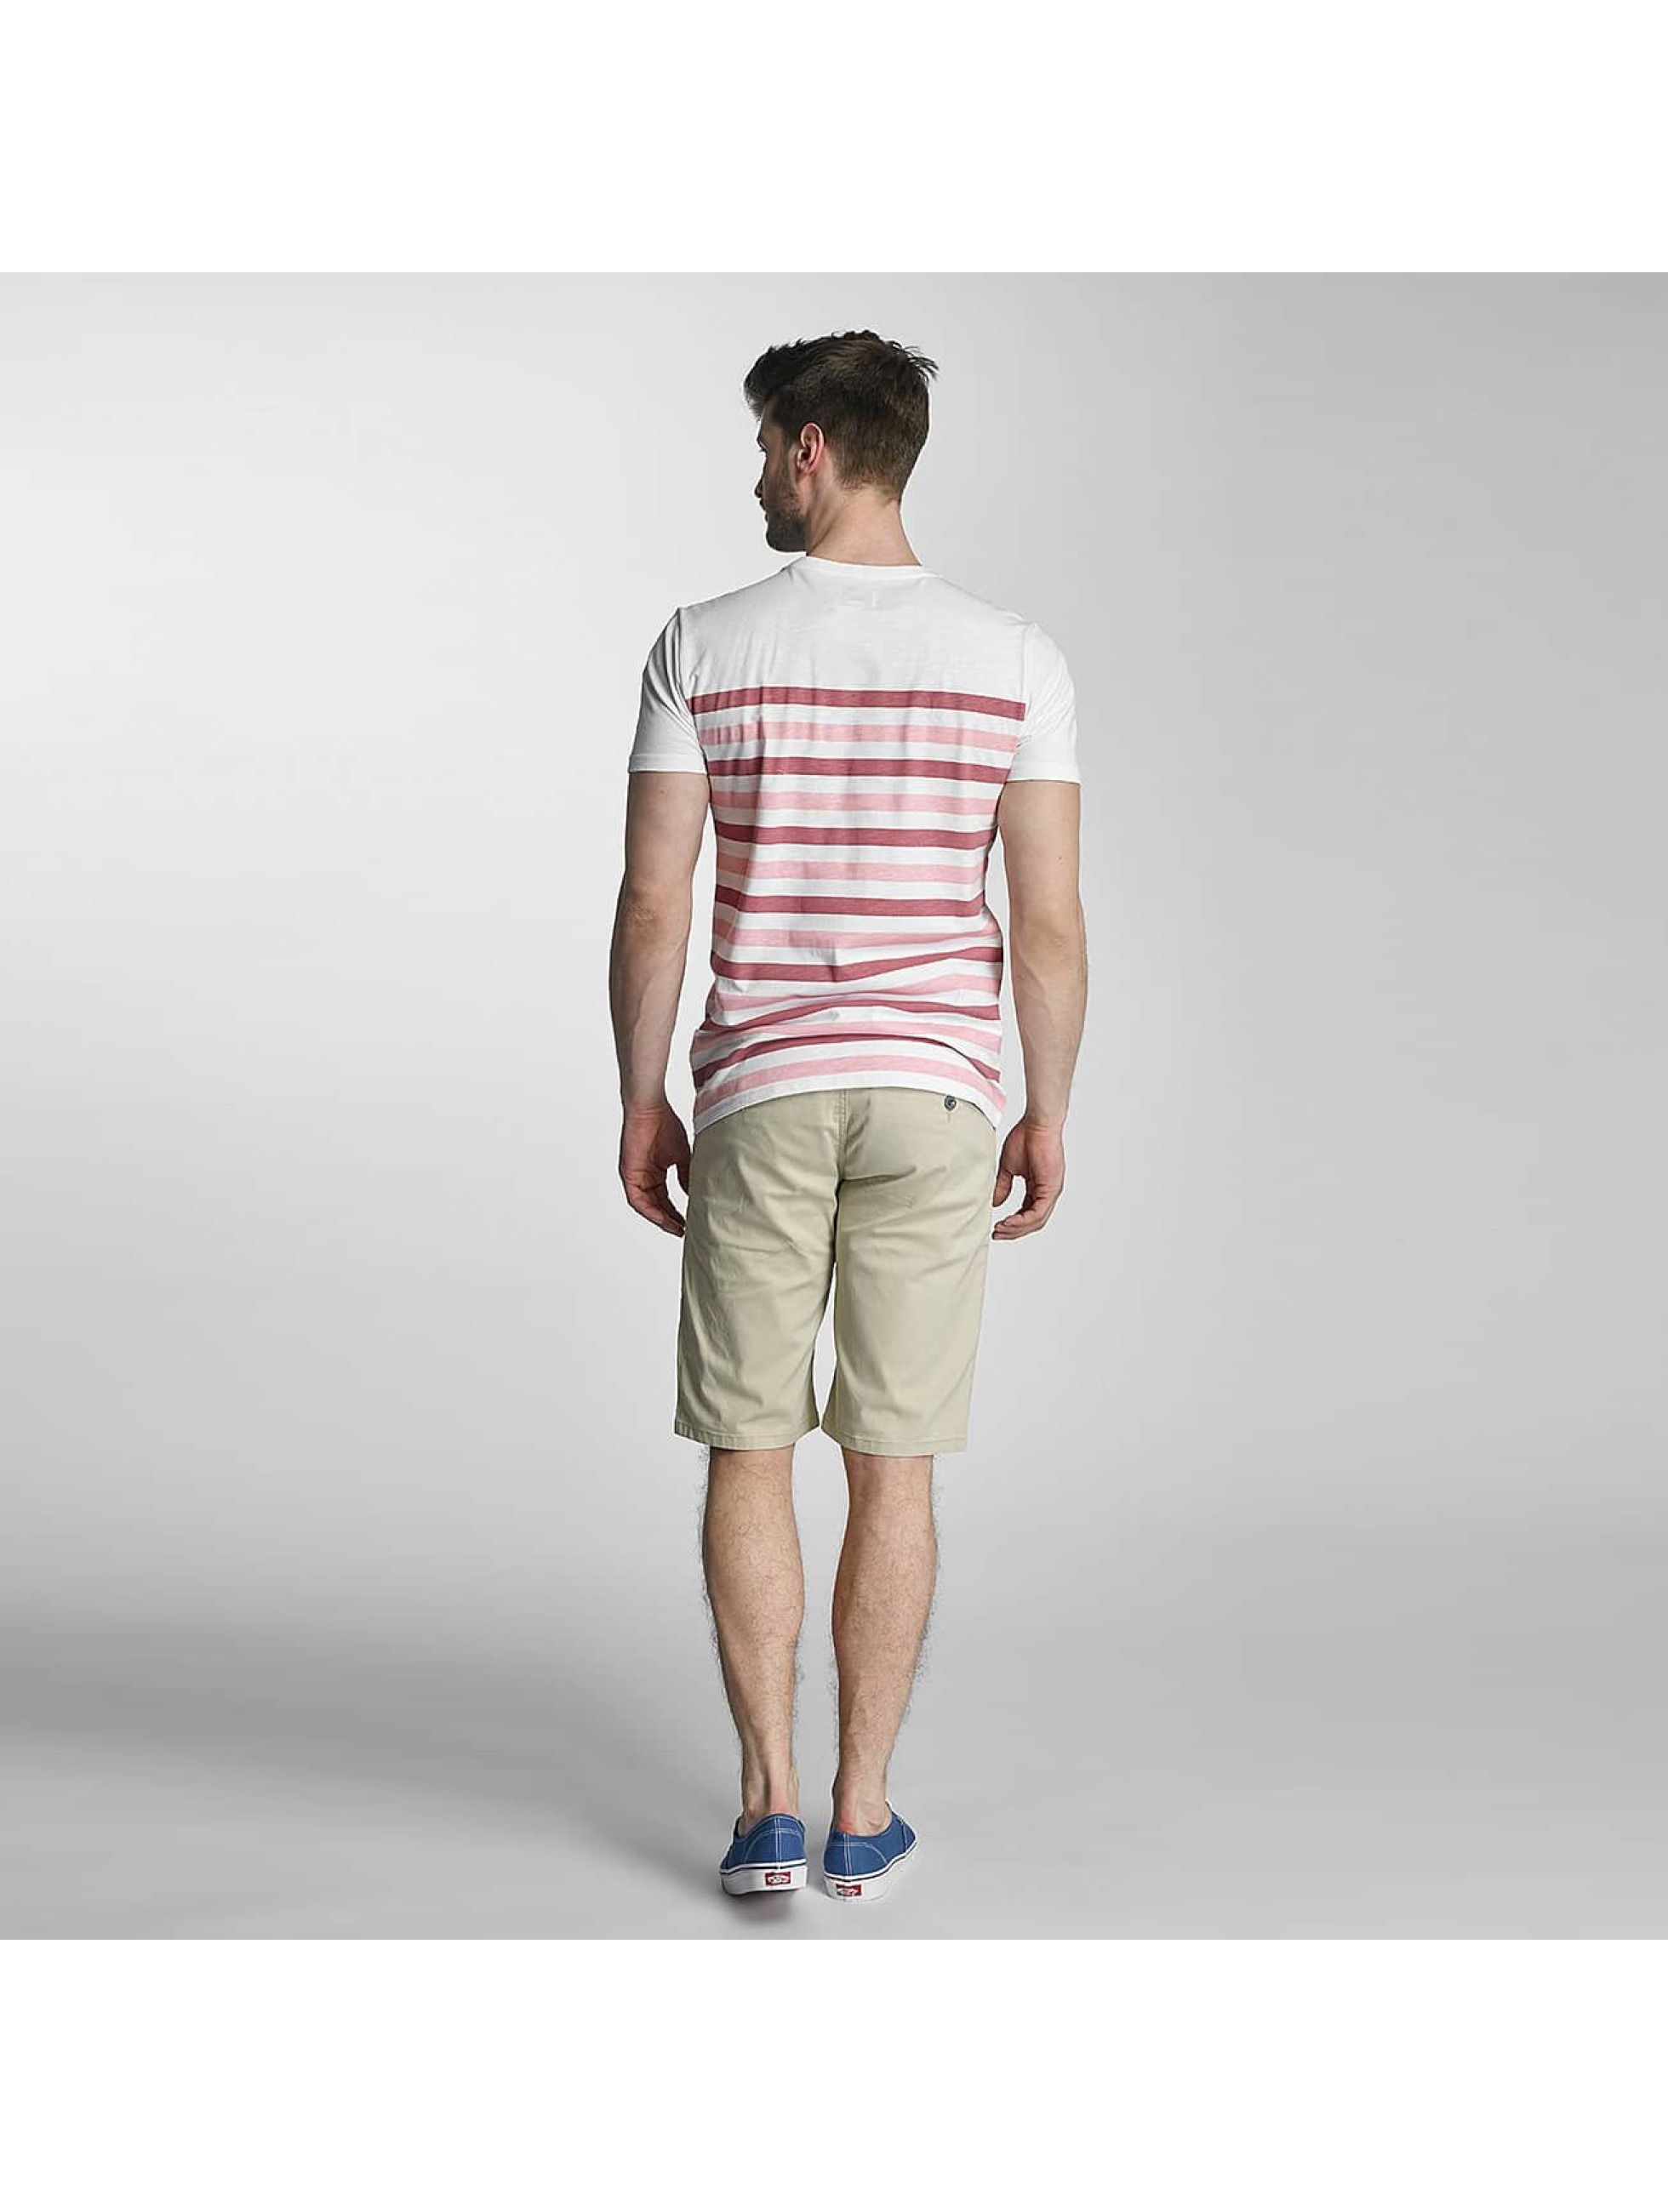 SHINE Original T-shirt Striped rosa chiaro